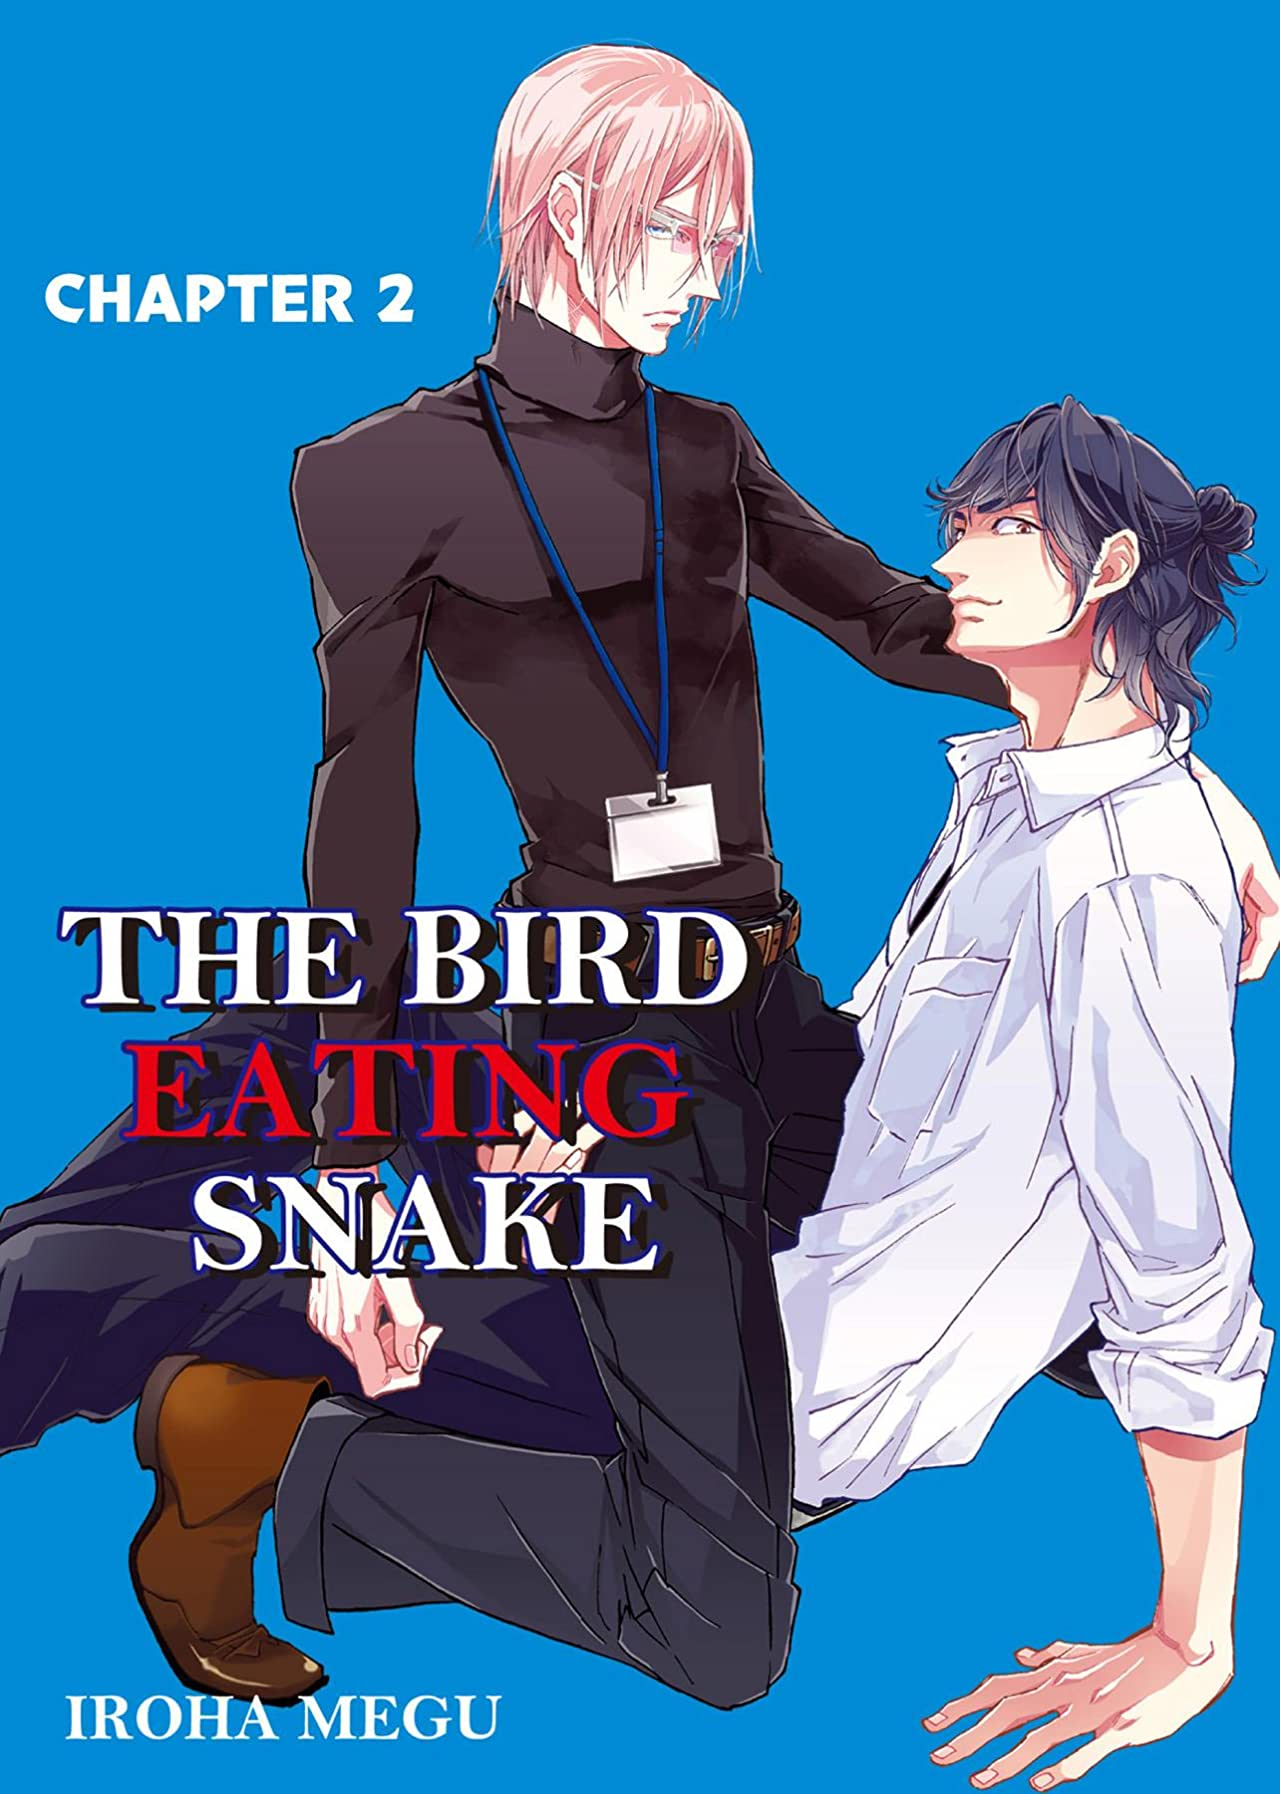 THE BIRD EATING SNAKE #2